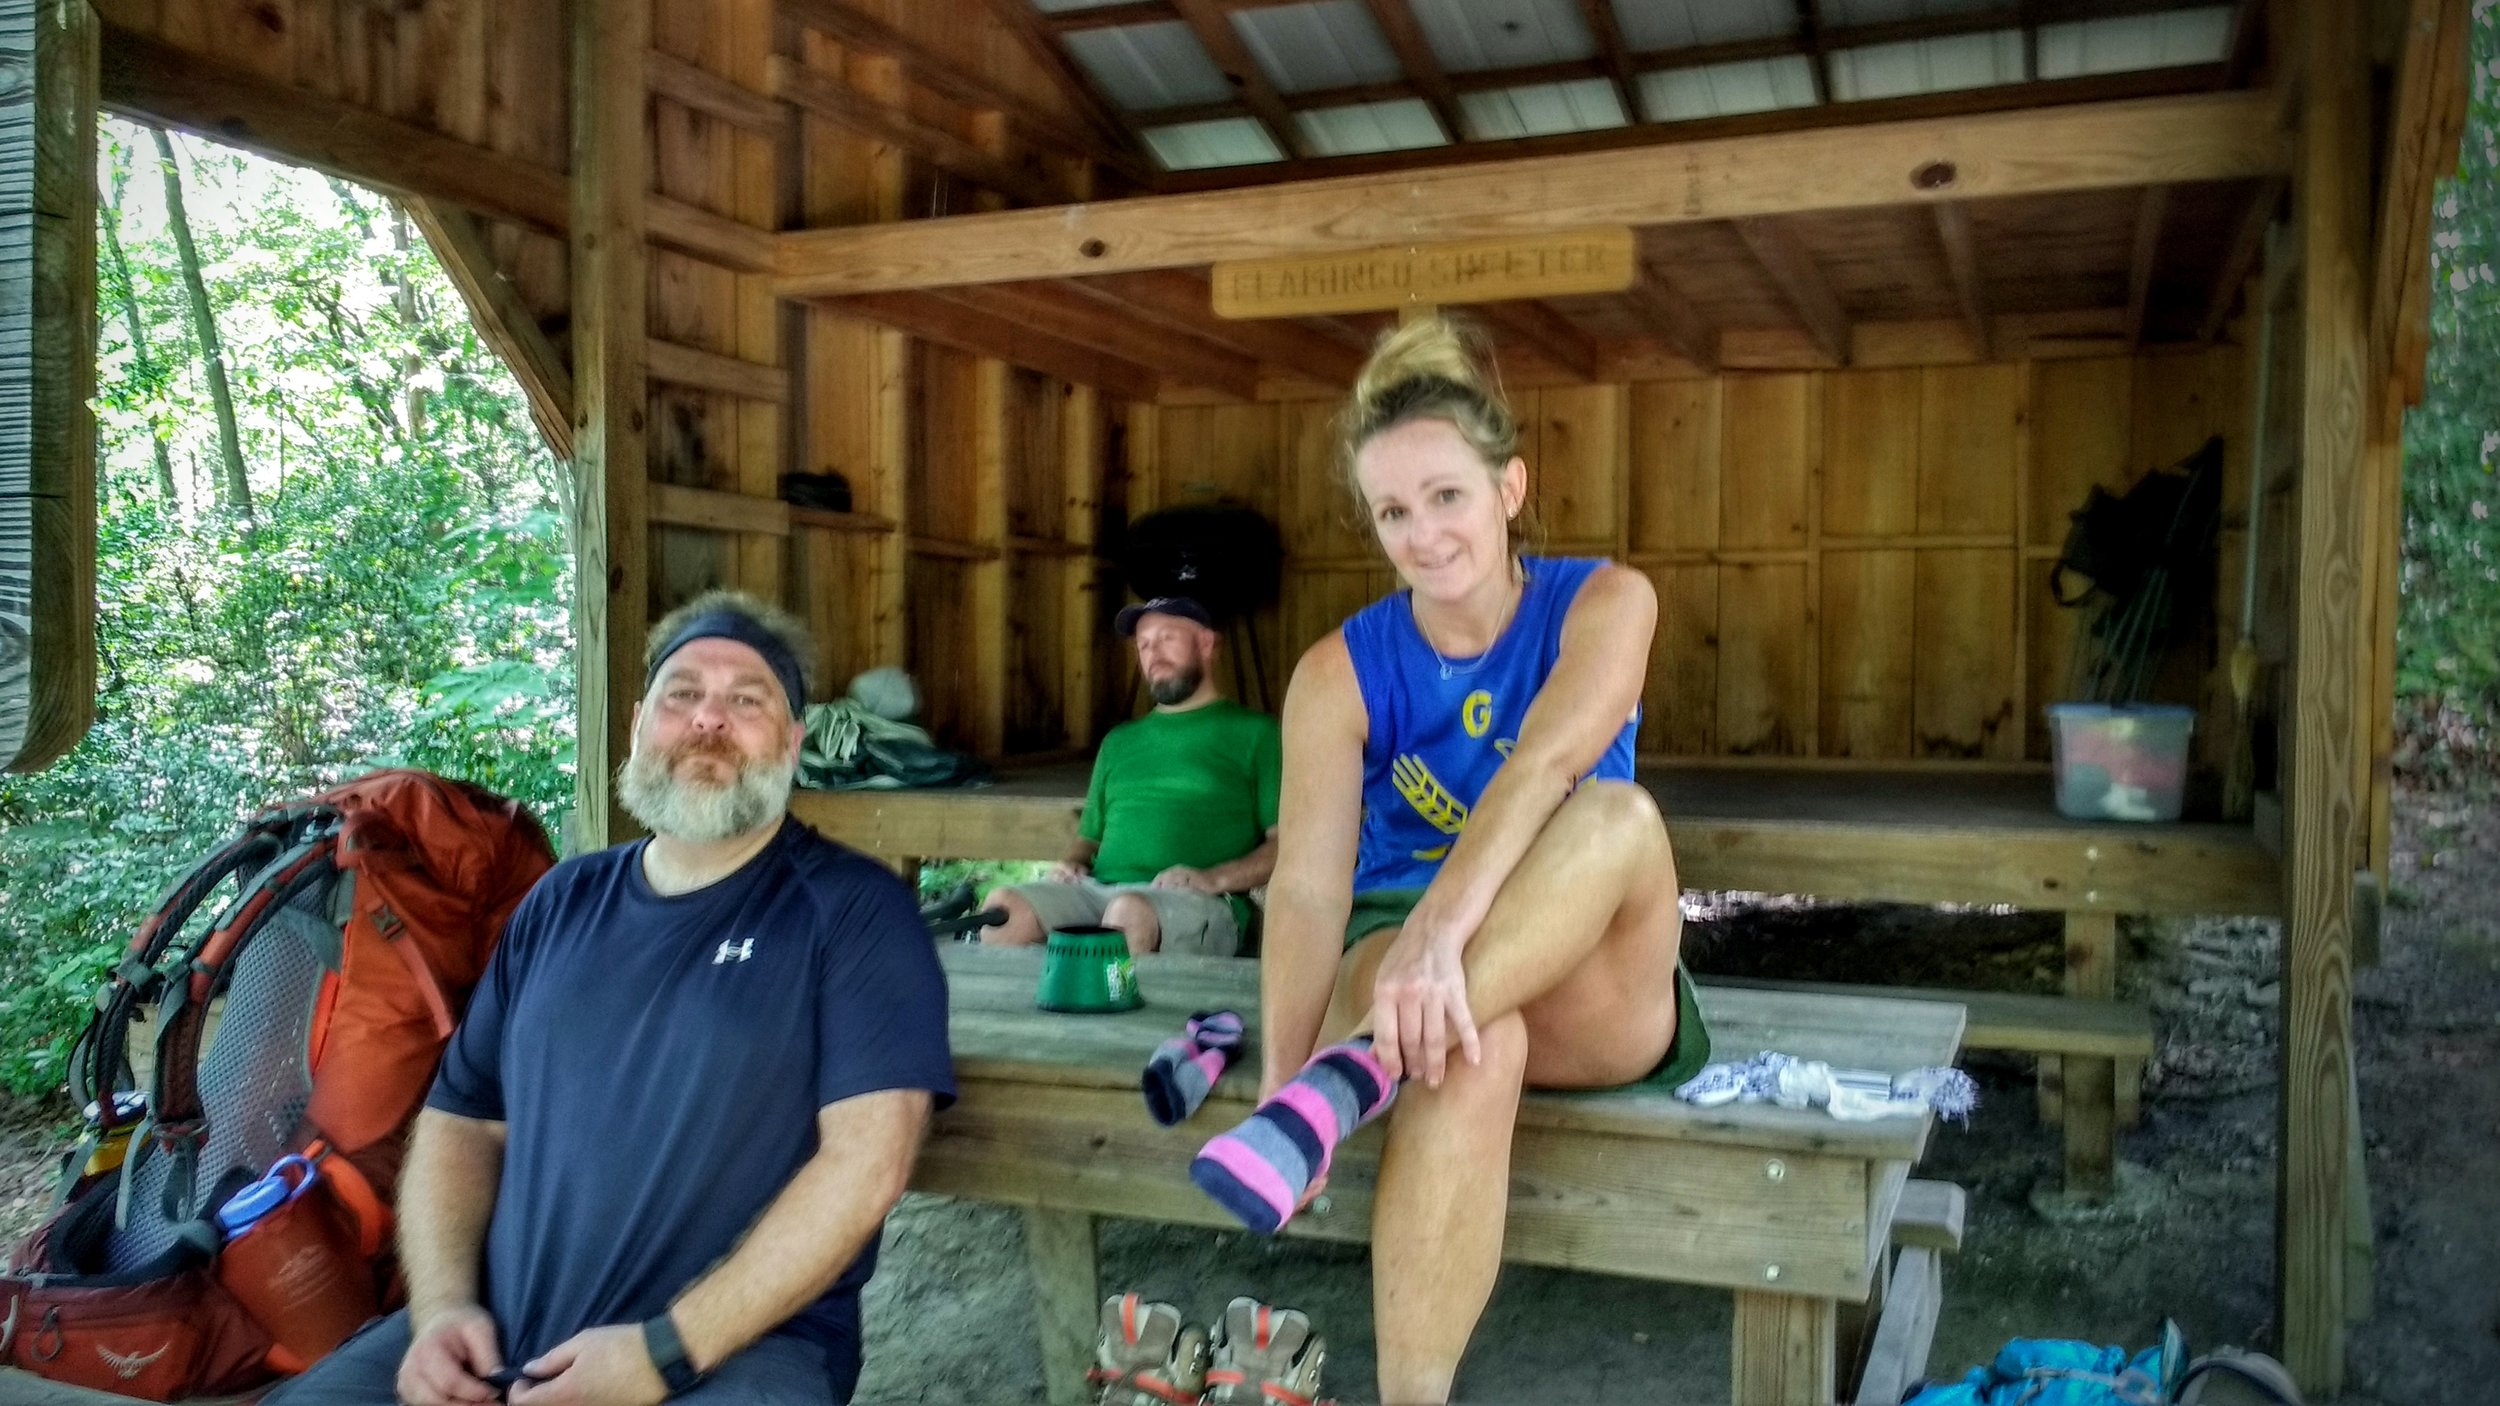 Unwinding at Flamingo Shelter after two days of extreme heat and humidity on Pine Mountain Trail